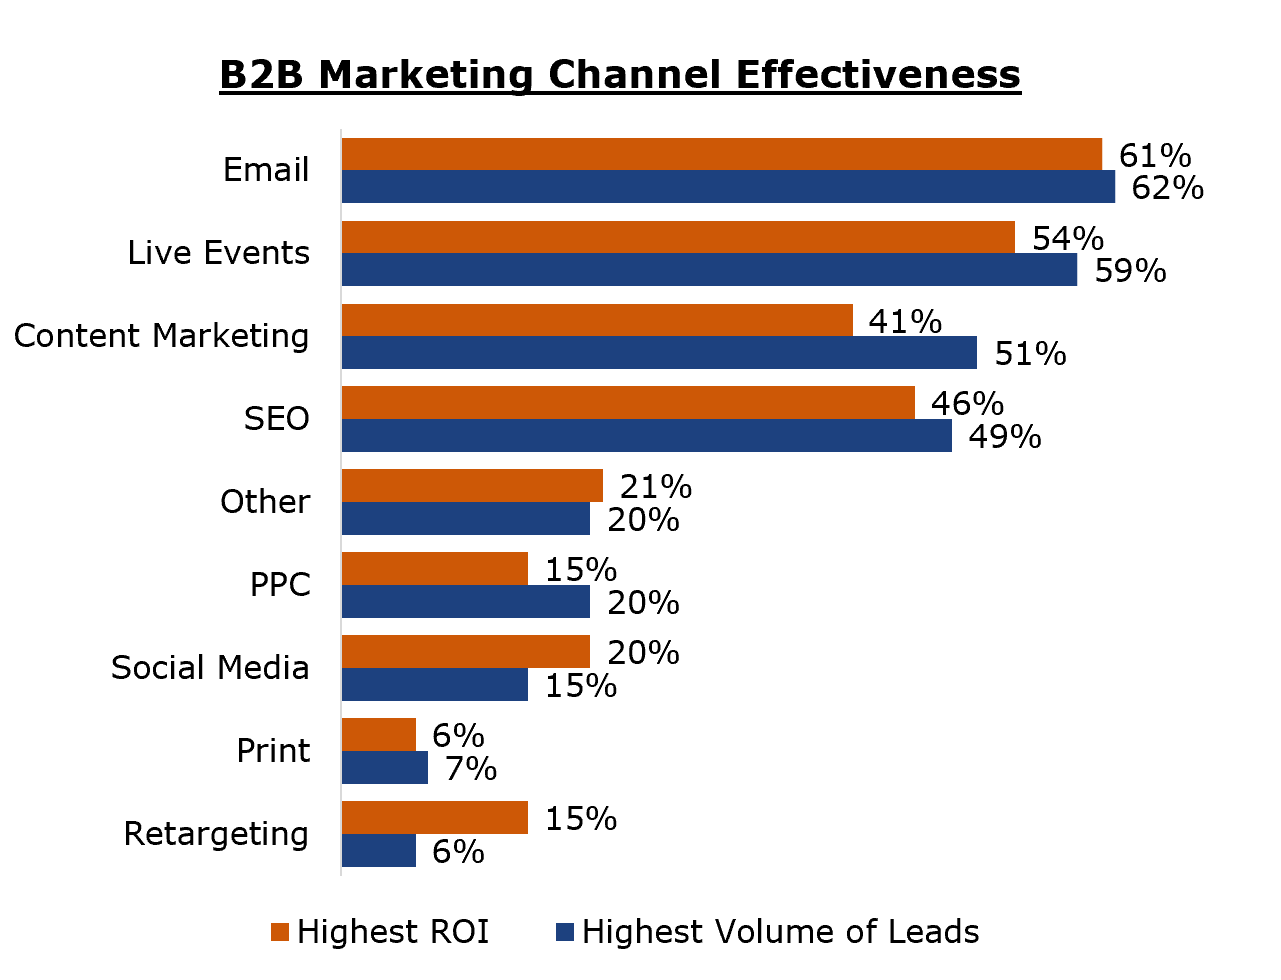 B2B Marketing Effectiveness By Channel